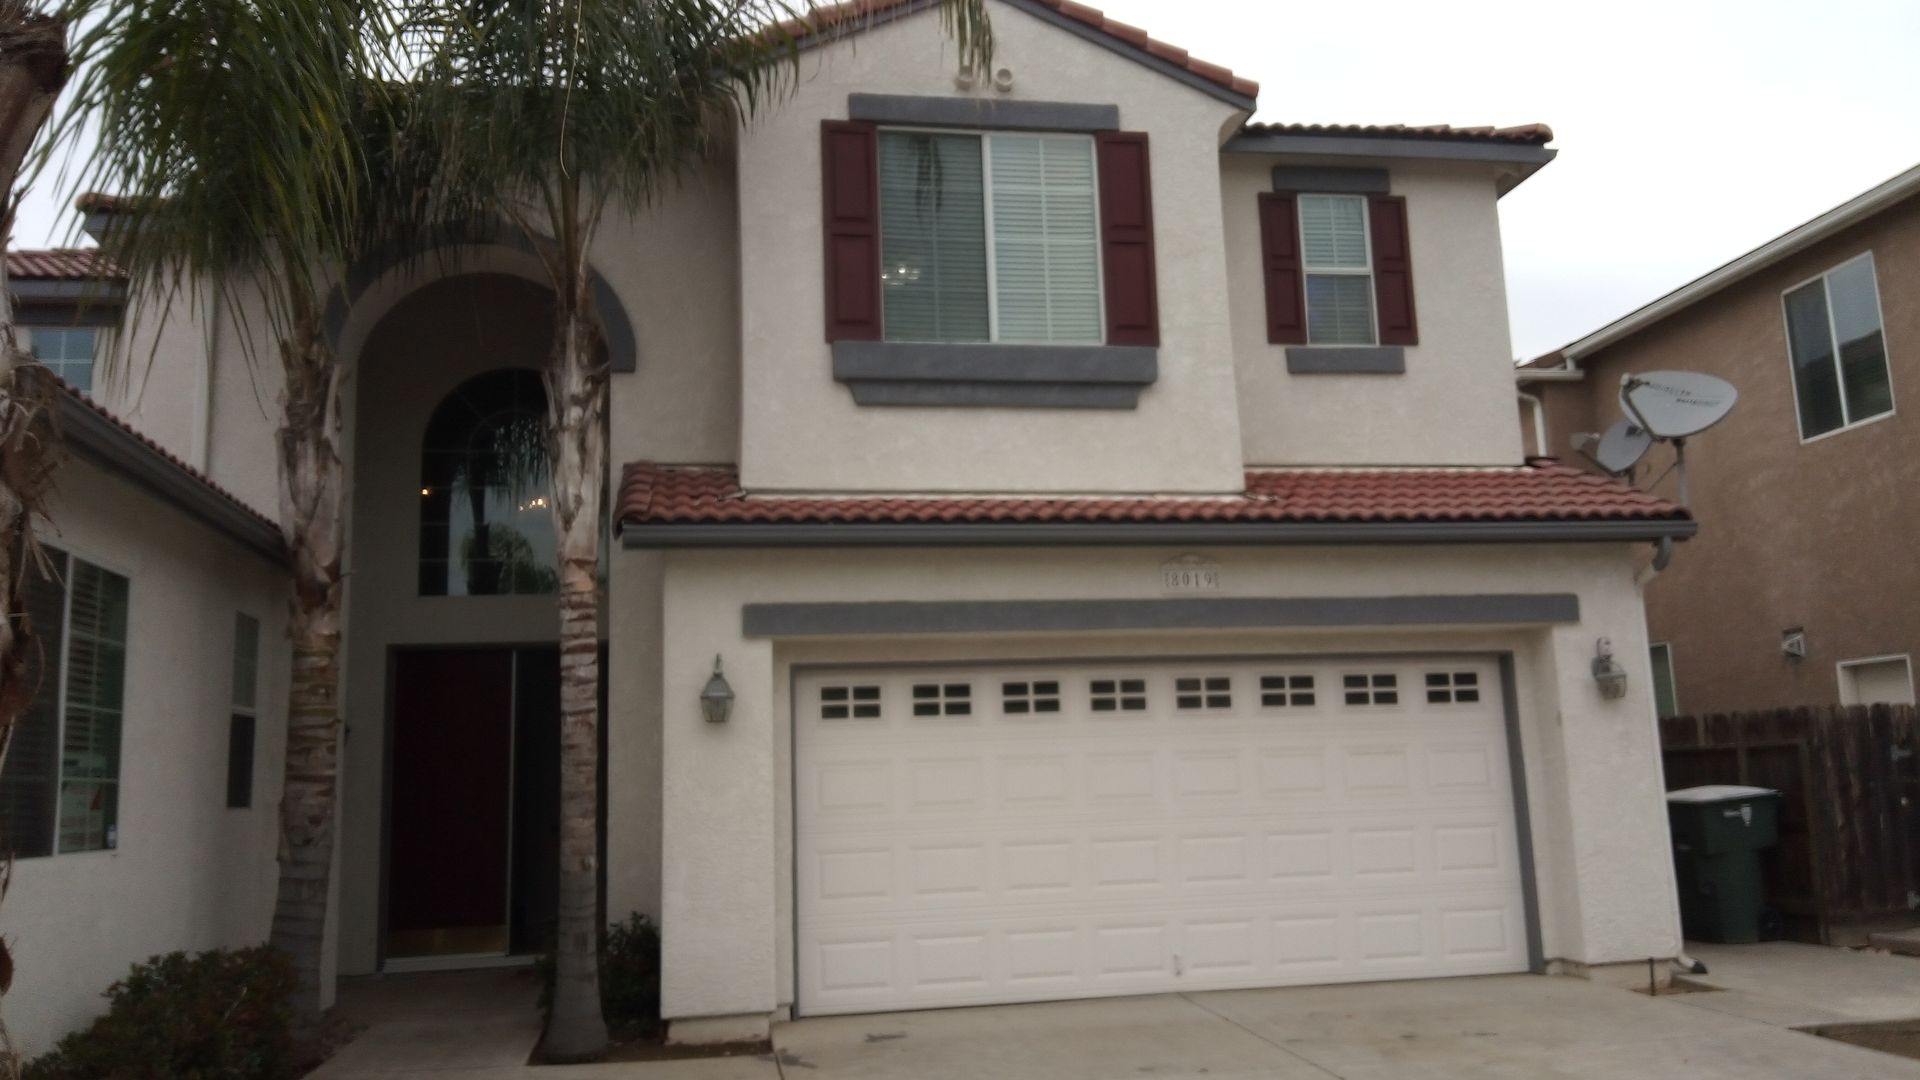 Fresno CA For Sale by Owner (FSBO) - 41 Homes | Zillow